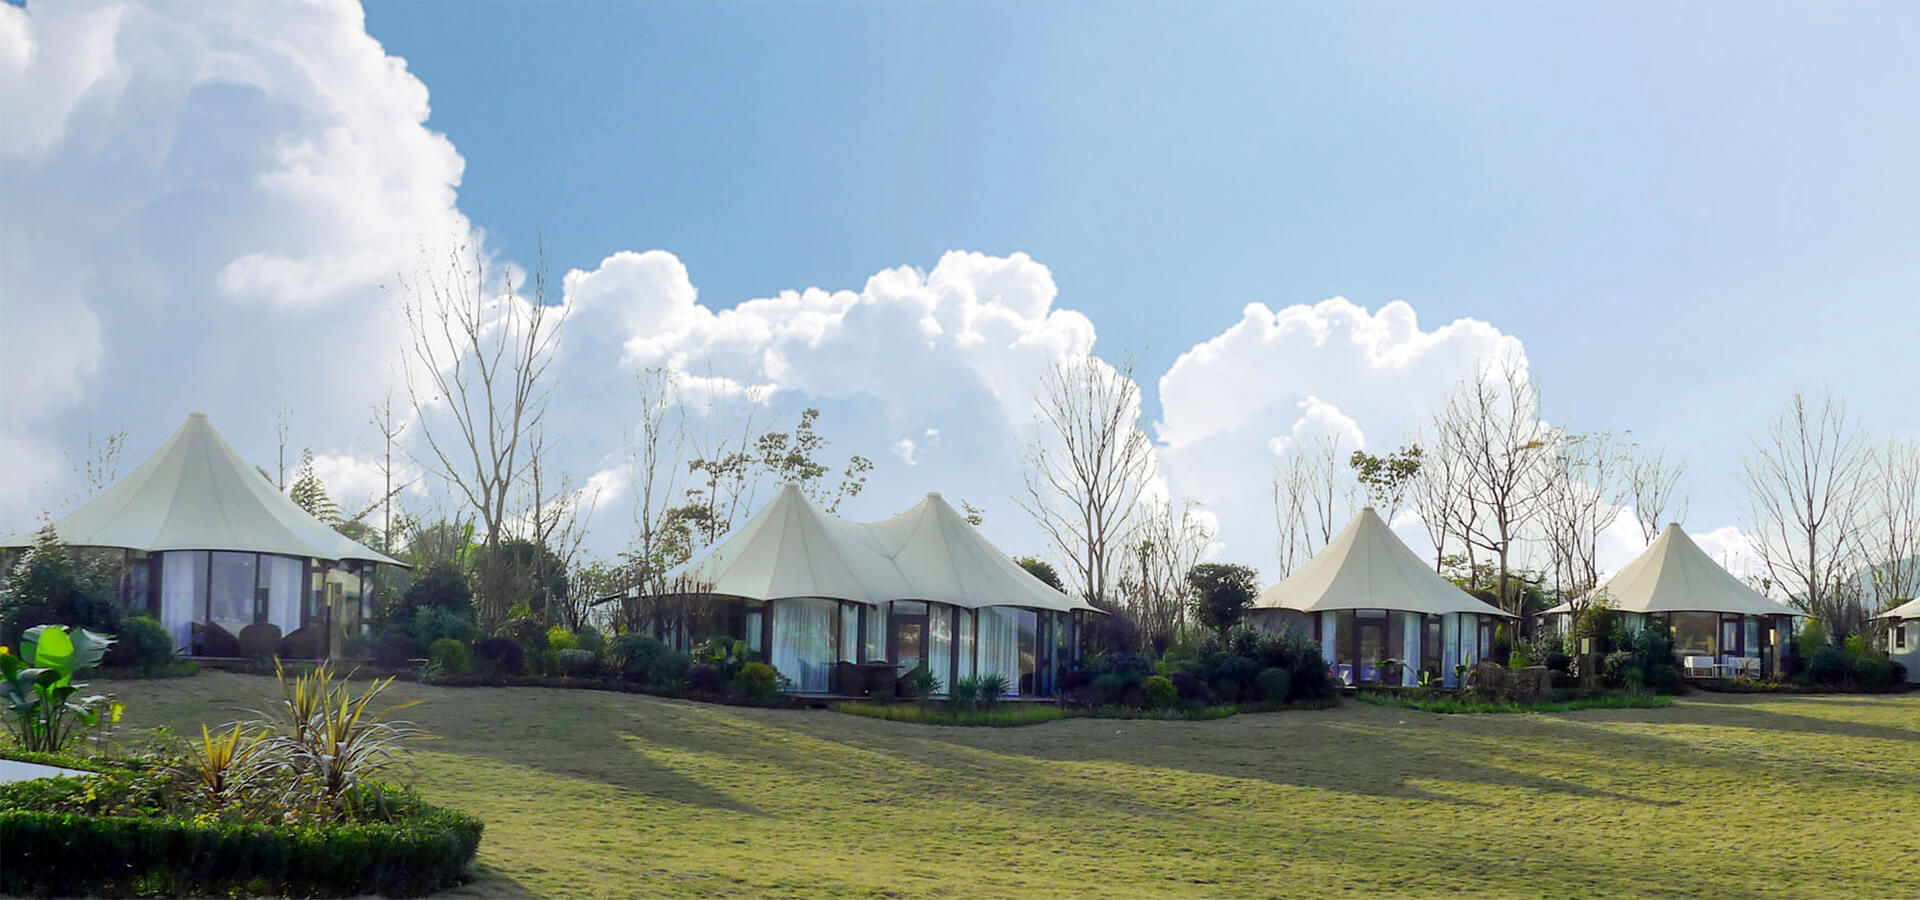 luxury lodge tent for glamping resort